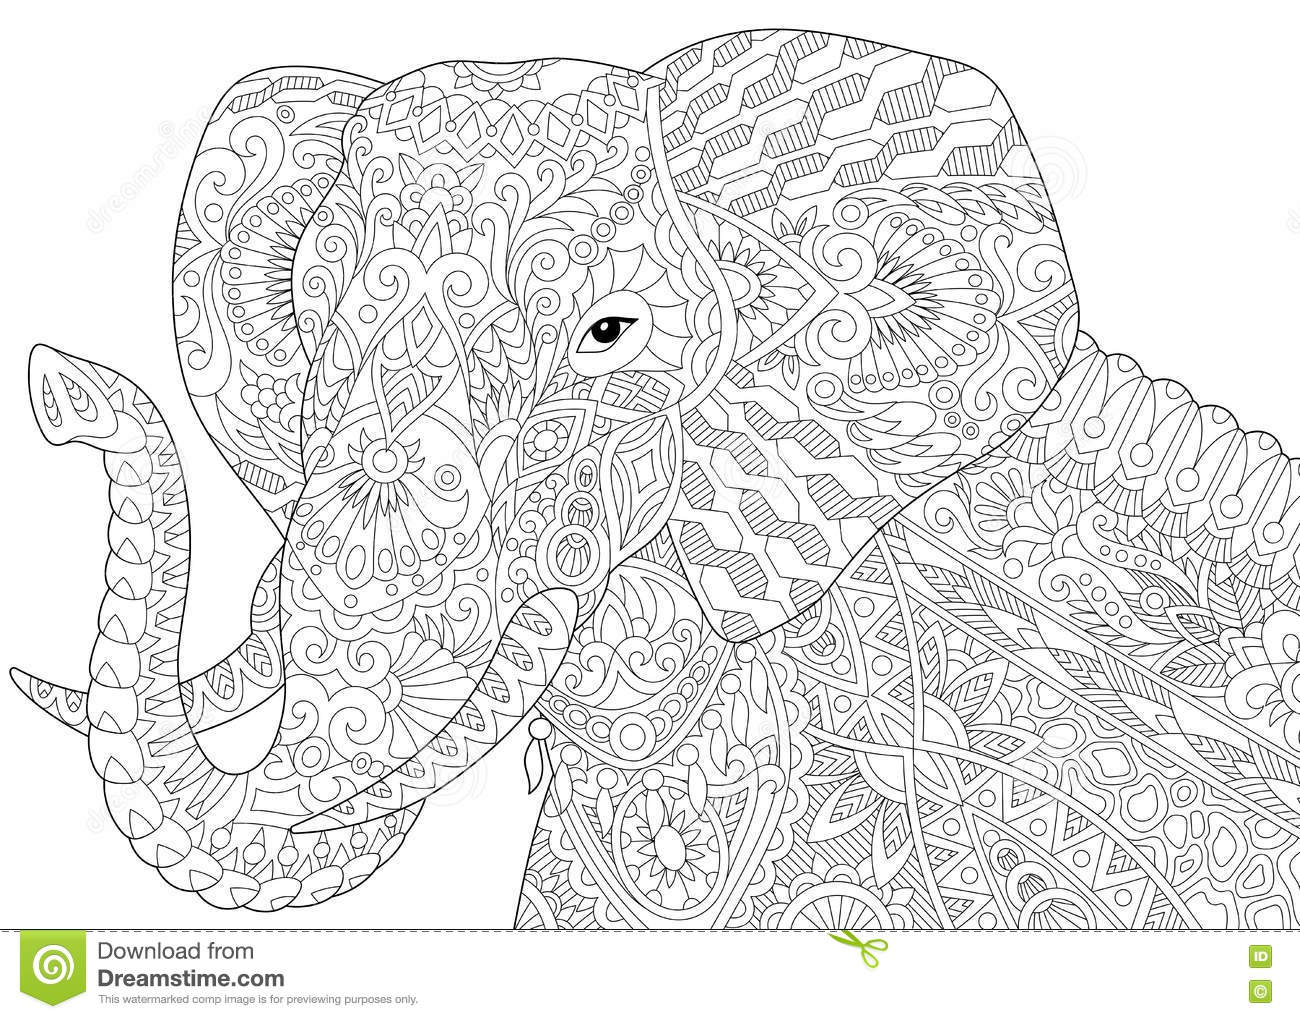 Free zentangle elephant coloring pages ~ Zentangle Stylized Elephant Stock Vector - Illustration of ...